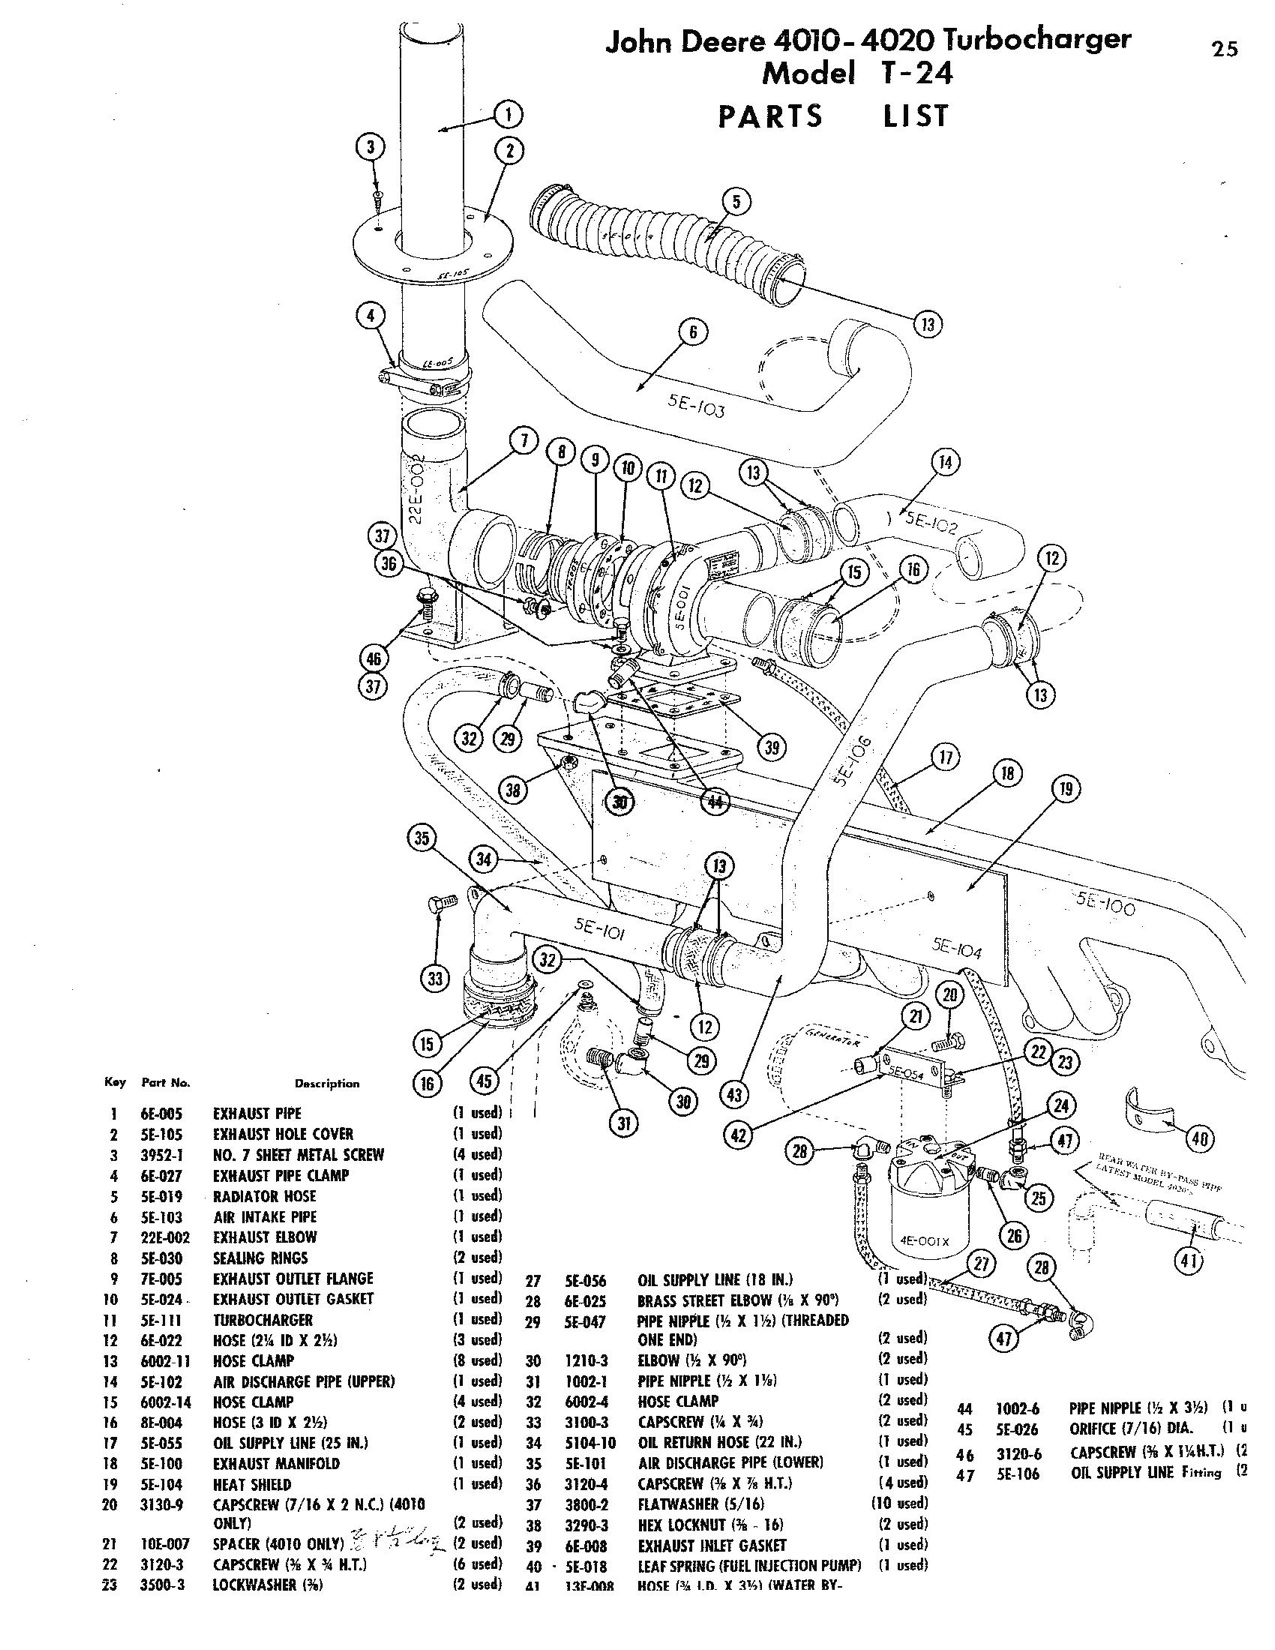 t24 john deere 4010 t 24 turbo kits m&w rajay & garrett john deere 4010 wiring diagram at bayanpartner.co